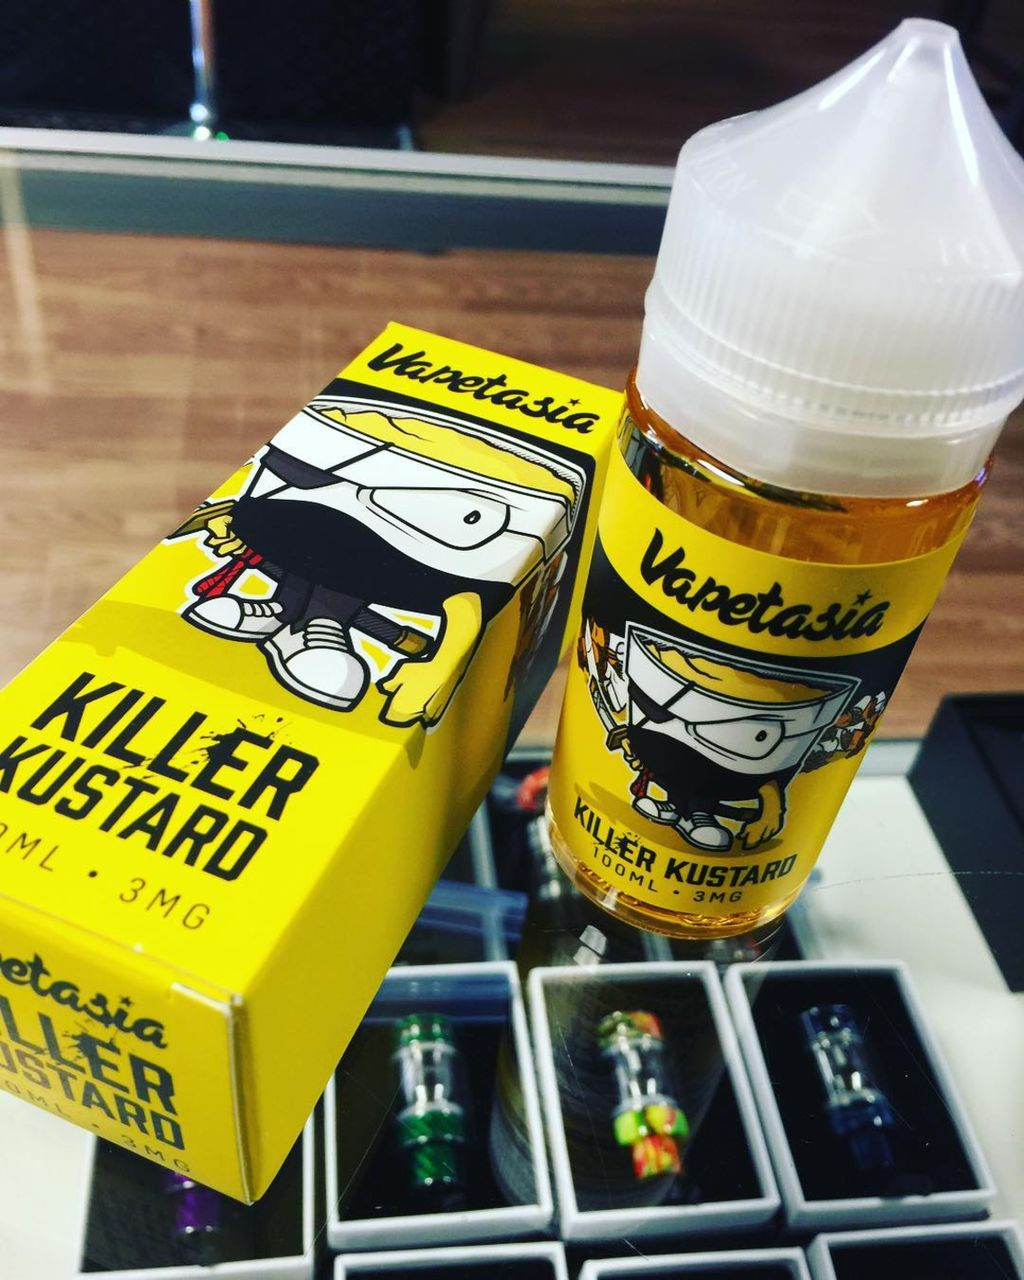 Return of cartoon to market e-cigarette-related products